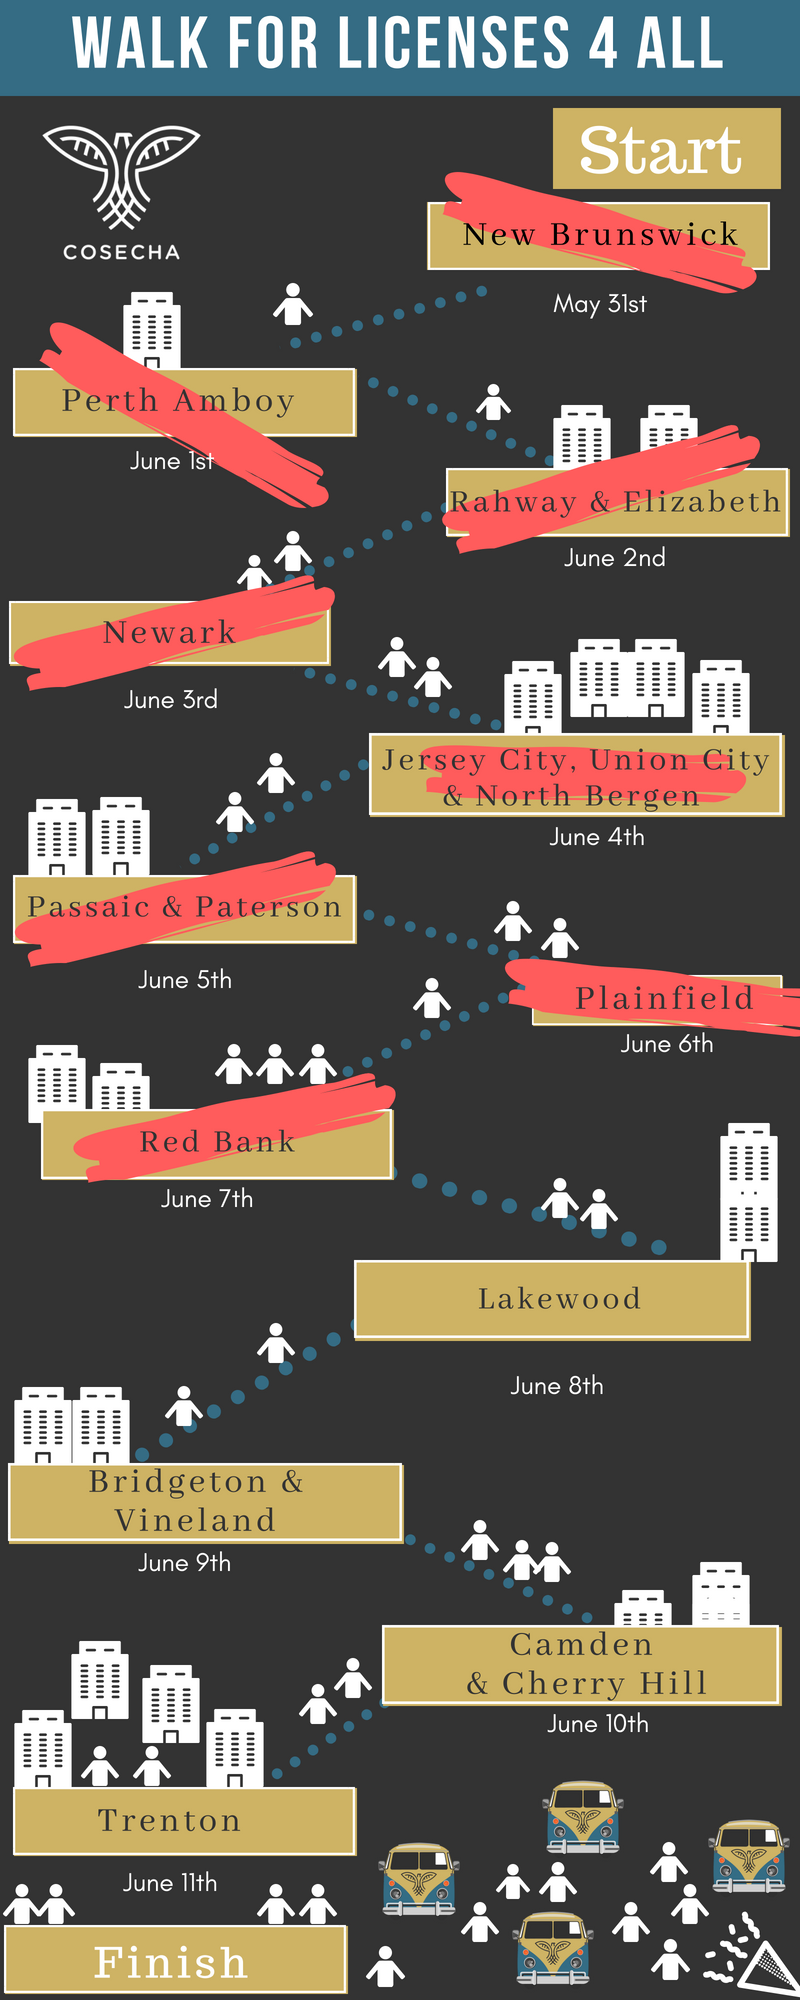 Join us along the way throughout the 11-day walk across New Jersey!Find all the actions and events for drivers liceneses happening in each city we pass through! - Day 1 5/31/18 ThursdayNew Brunswick: Launch!https://www.facebook.com/events/228949091023063/Day 2 6/1/18 FridayPerth AmboyRally and community meeting *click to join*Day 3 6/2/18 SaturdayRahway & ElizabethRally for the walkers- Rahway! *click to join*Rally for the walkers - Elizabeth! *click to join*Day 4 6/3/18 SundayNewarkDay 5 6/4/18 MondayMaplewoodDay 6 6/5/18 TuesdayPassaic & PatersonDay 7 6/6/18 WednesdayPlainfieldDay 8 6/7/18 ThursdayRed BankDay 9 6/8/18 FridayLakewoodDay 10 6/9/18 SaturdayBridgeton to VinelandDay 11 6/10/18 SundayCamdenDay 12 6/11/18 MondayTrenton